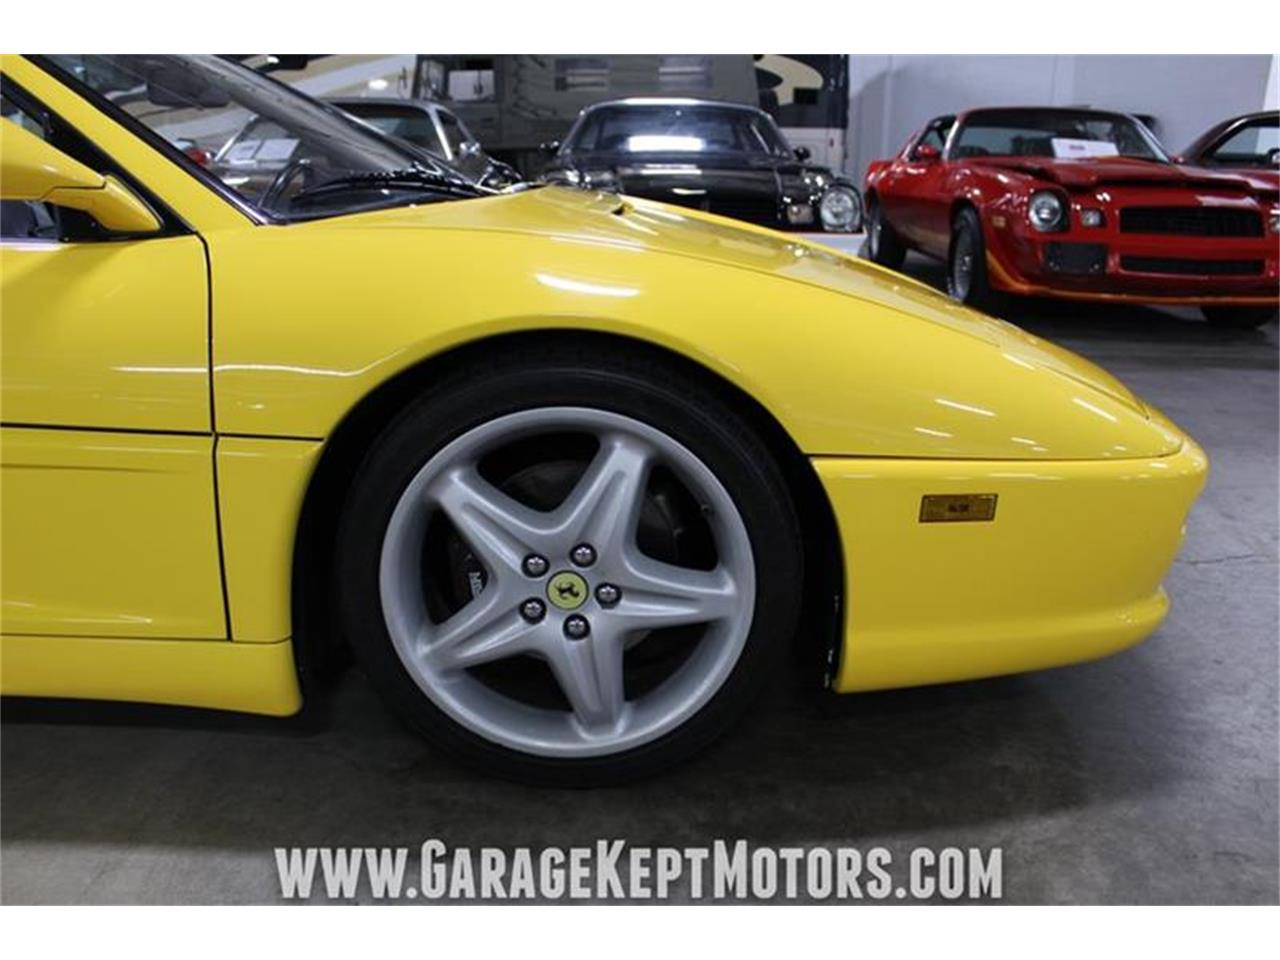 Large Picture of 1997 Ferrari F355 located in Michigan - $59,900.00 - PWXC